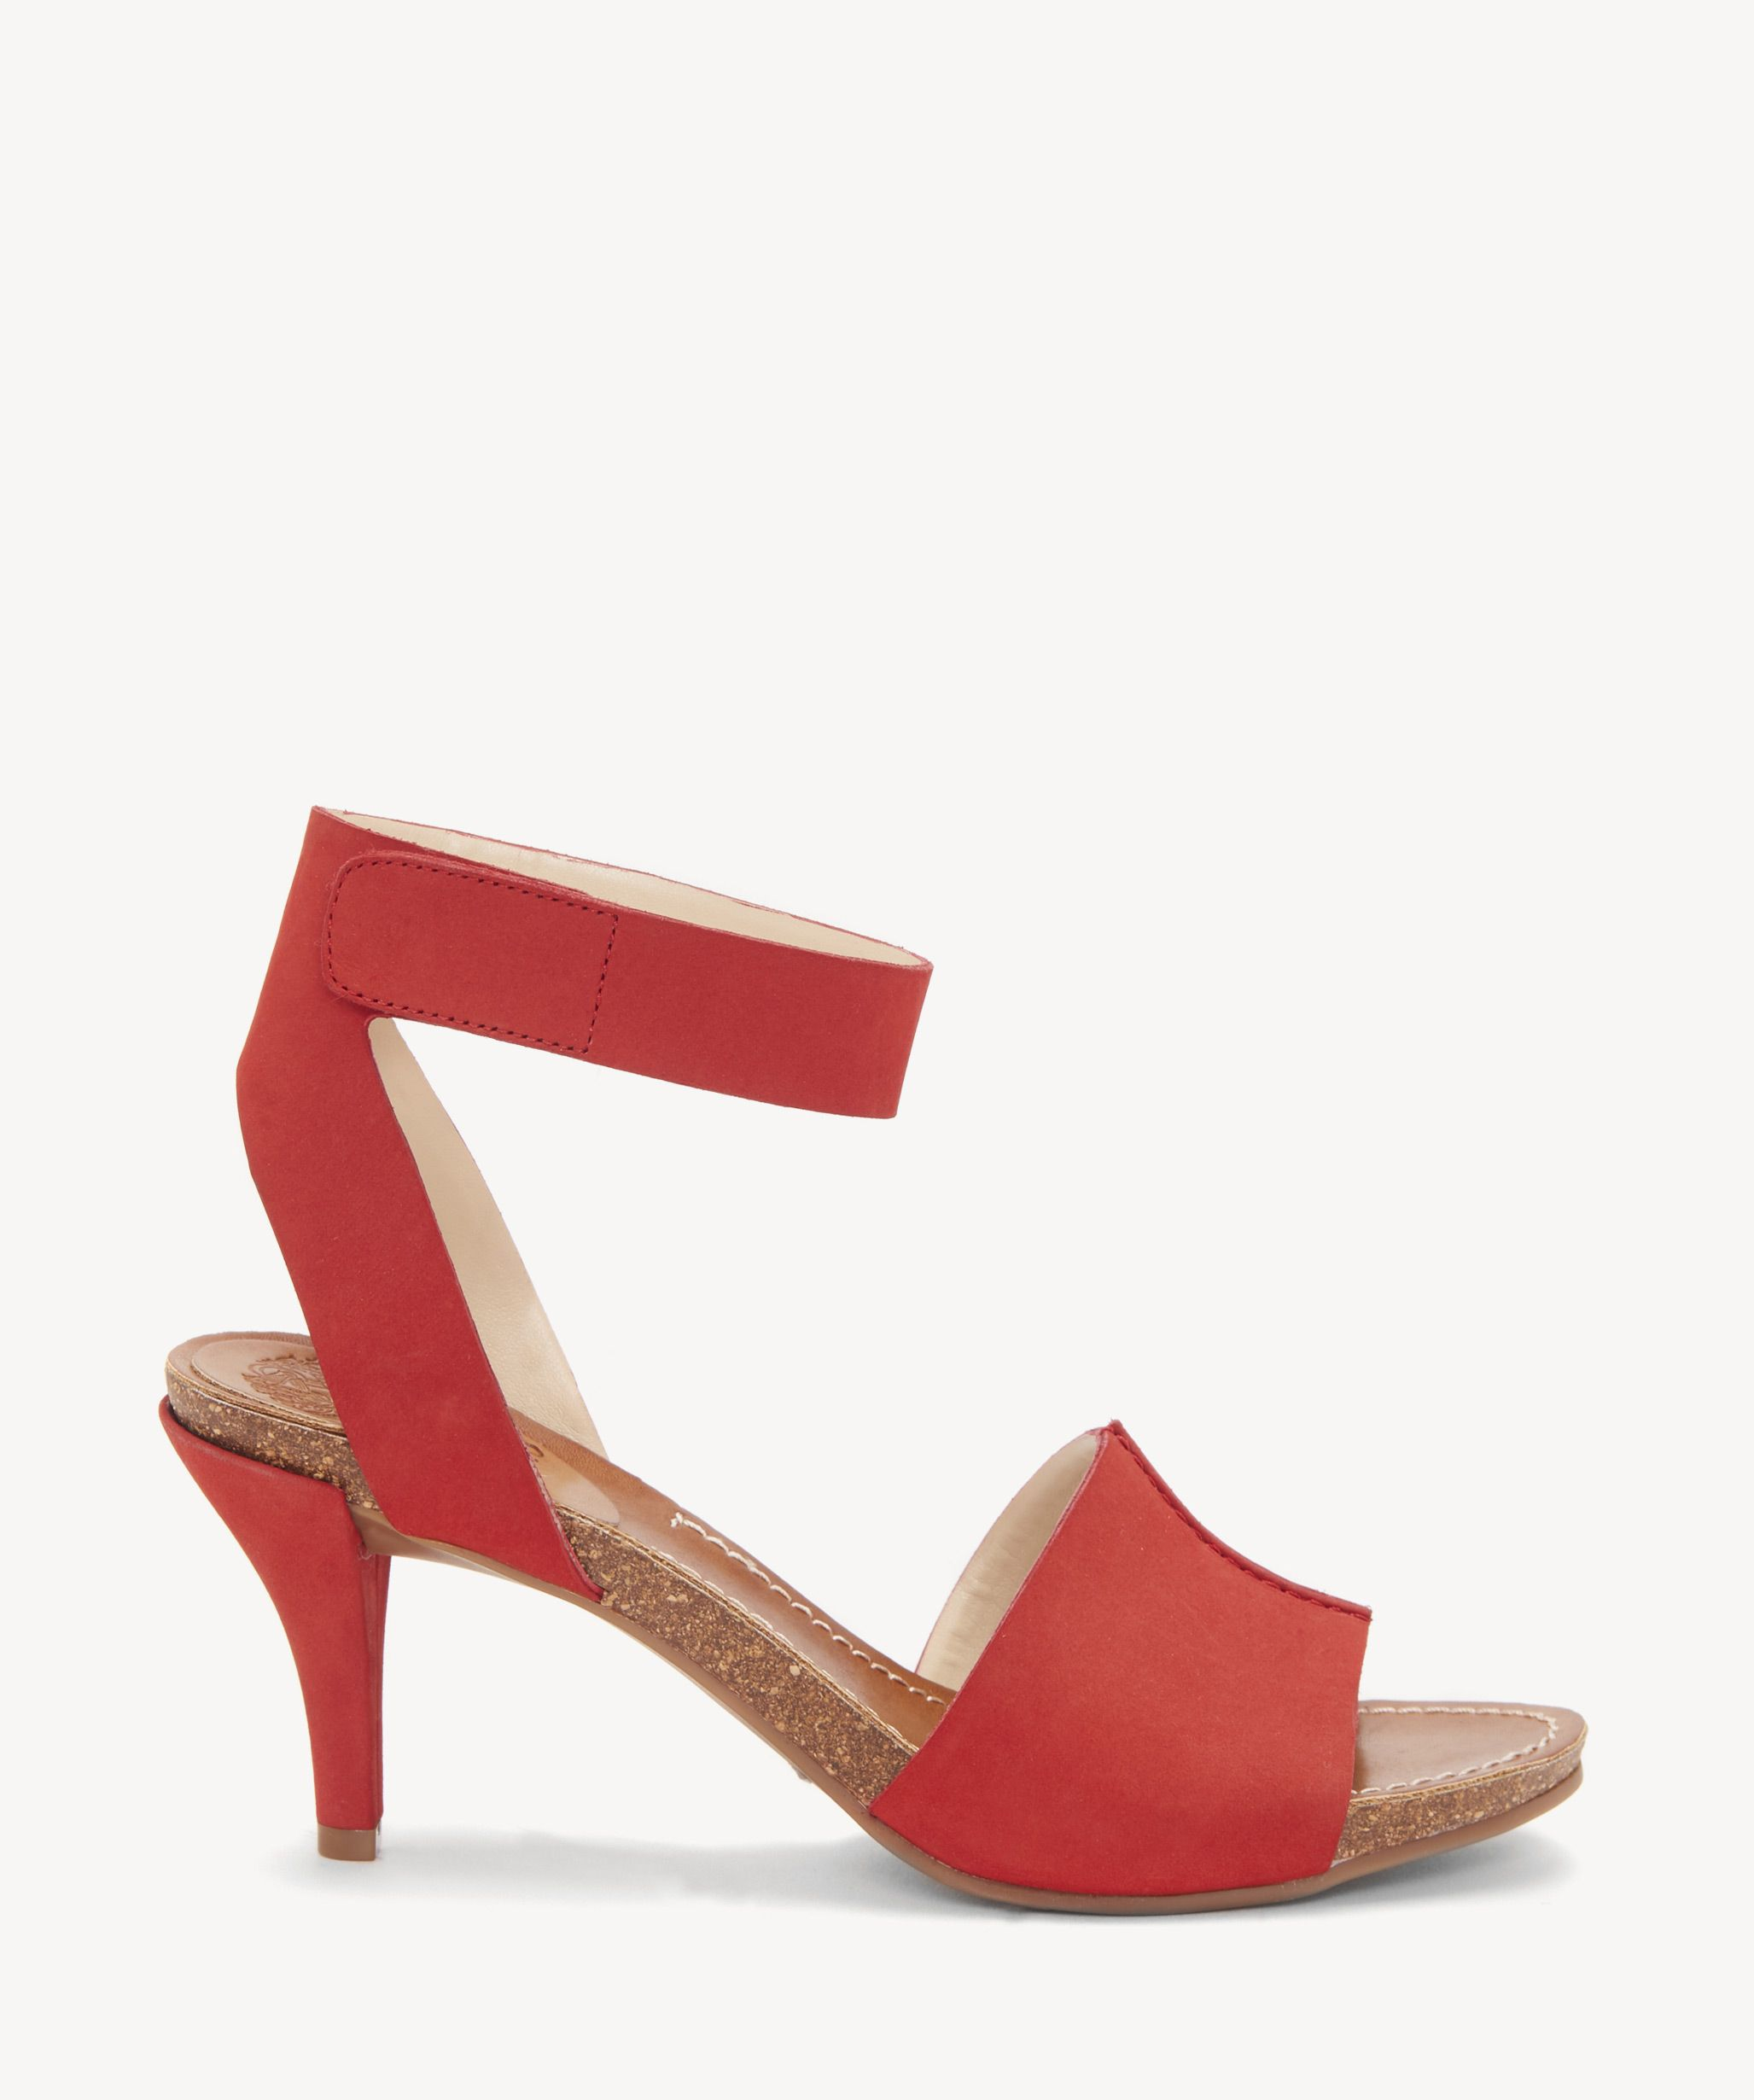 06a857ef48e Vince Camuto Women s Odela Heeled Sandals In Color  Tomatoe Tang